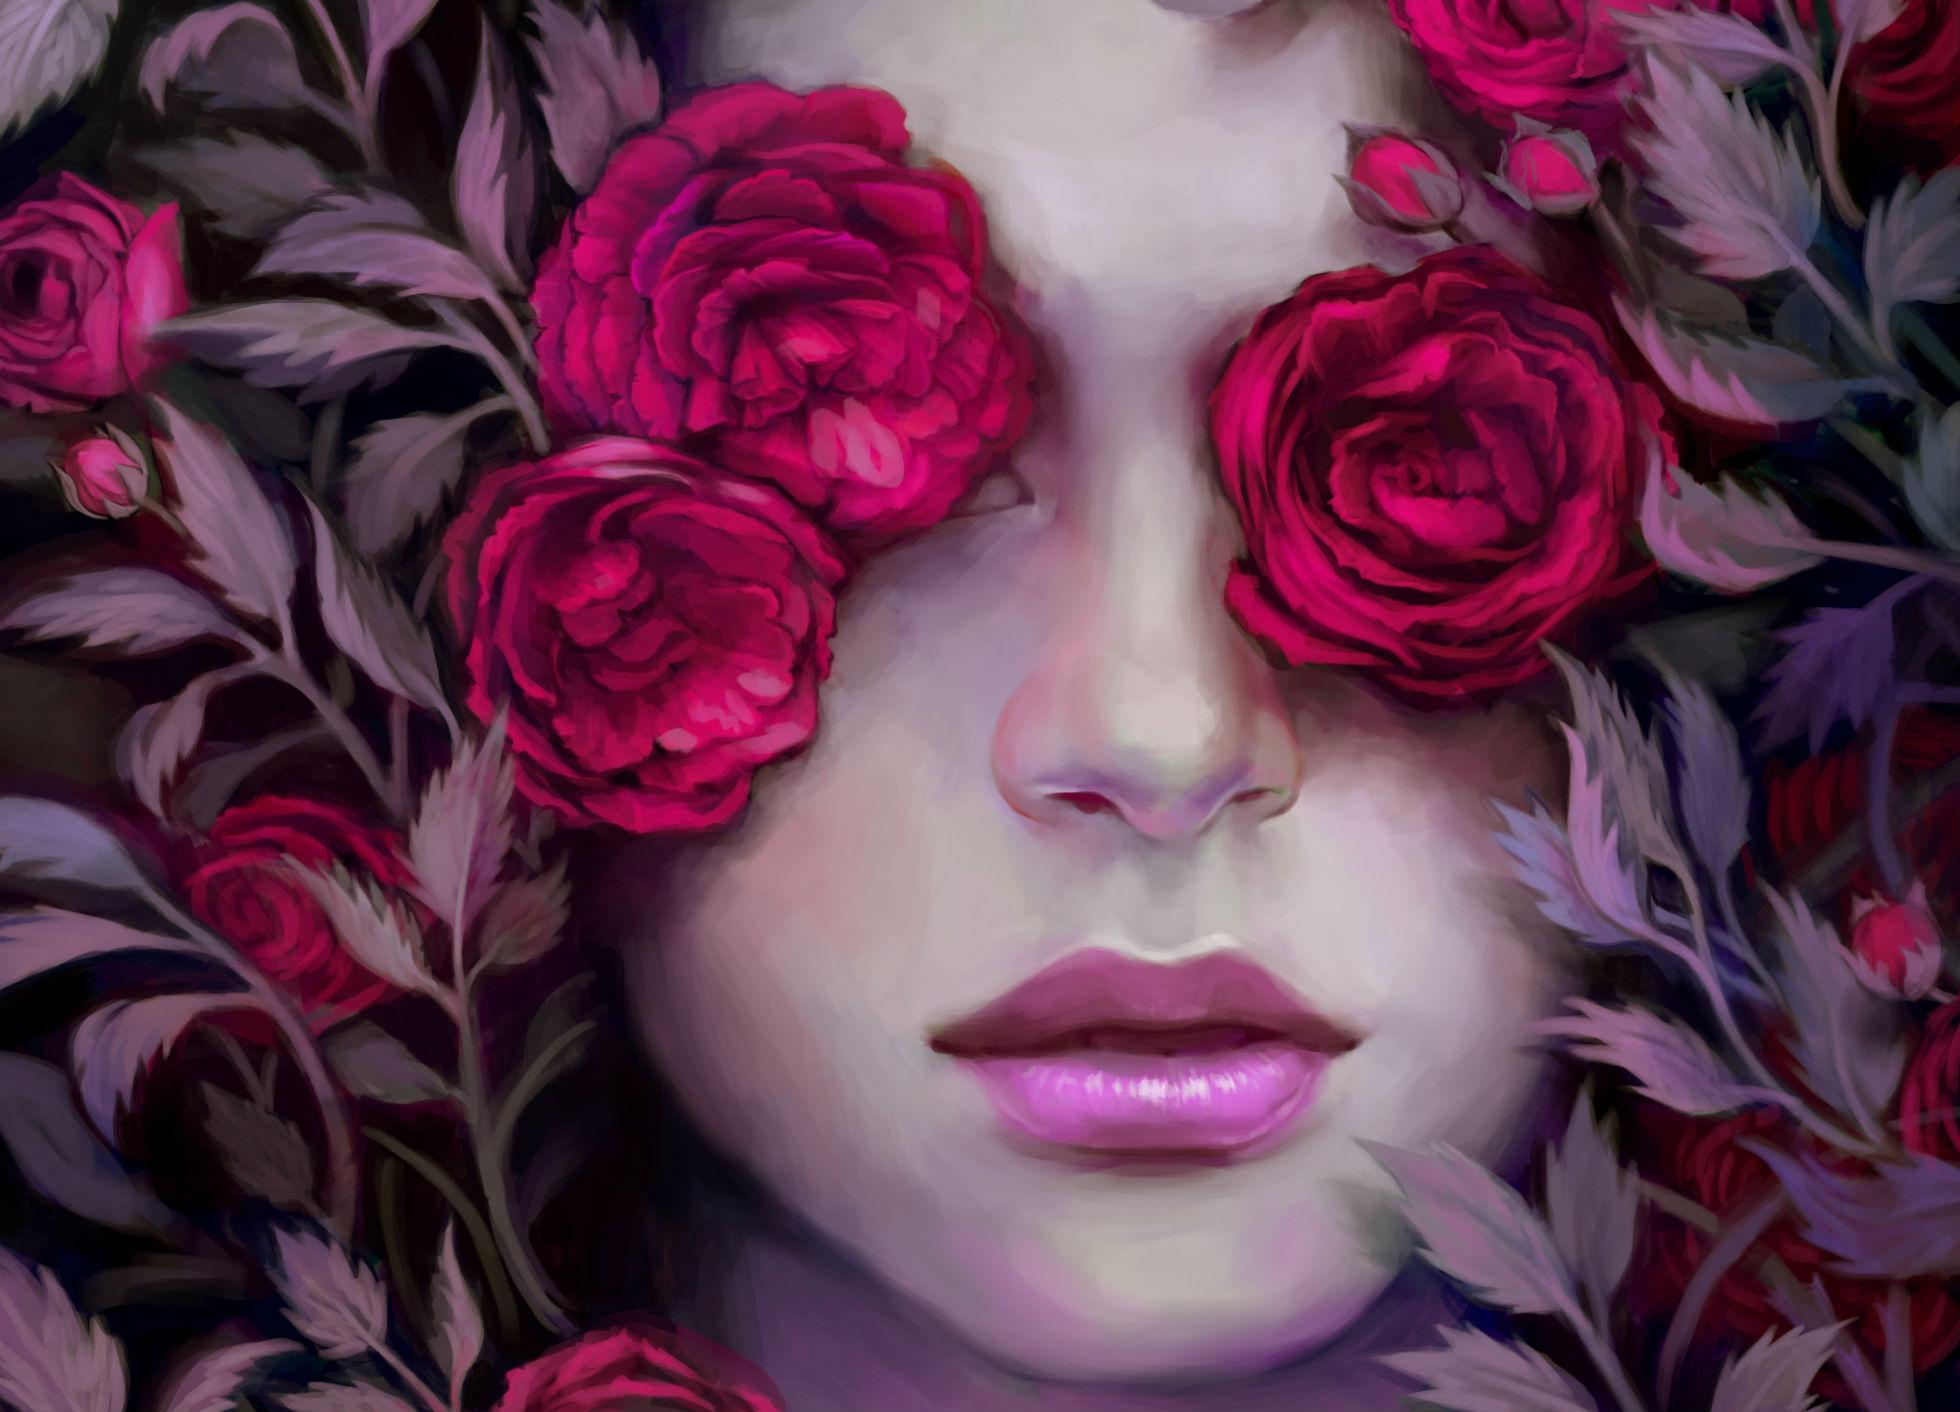 http://huyen-n00b.deviantart.com/art/Rose-s-Portrait-273713854 Wallpaper/Background 1960 x 1412 - id: 288389 - Wallpaper Abyss